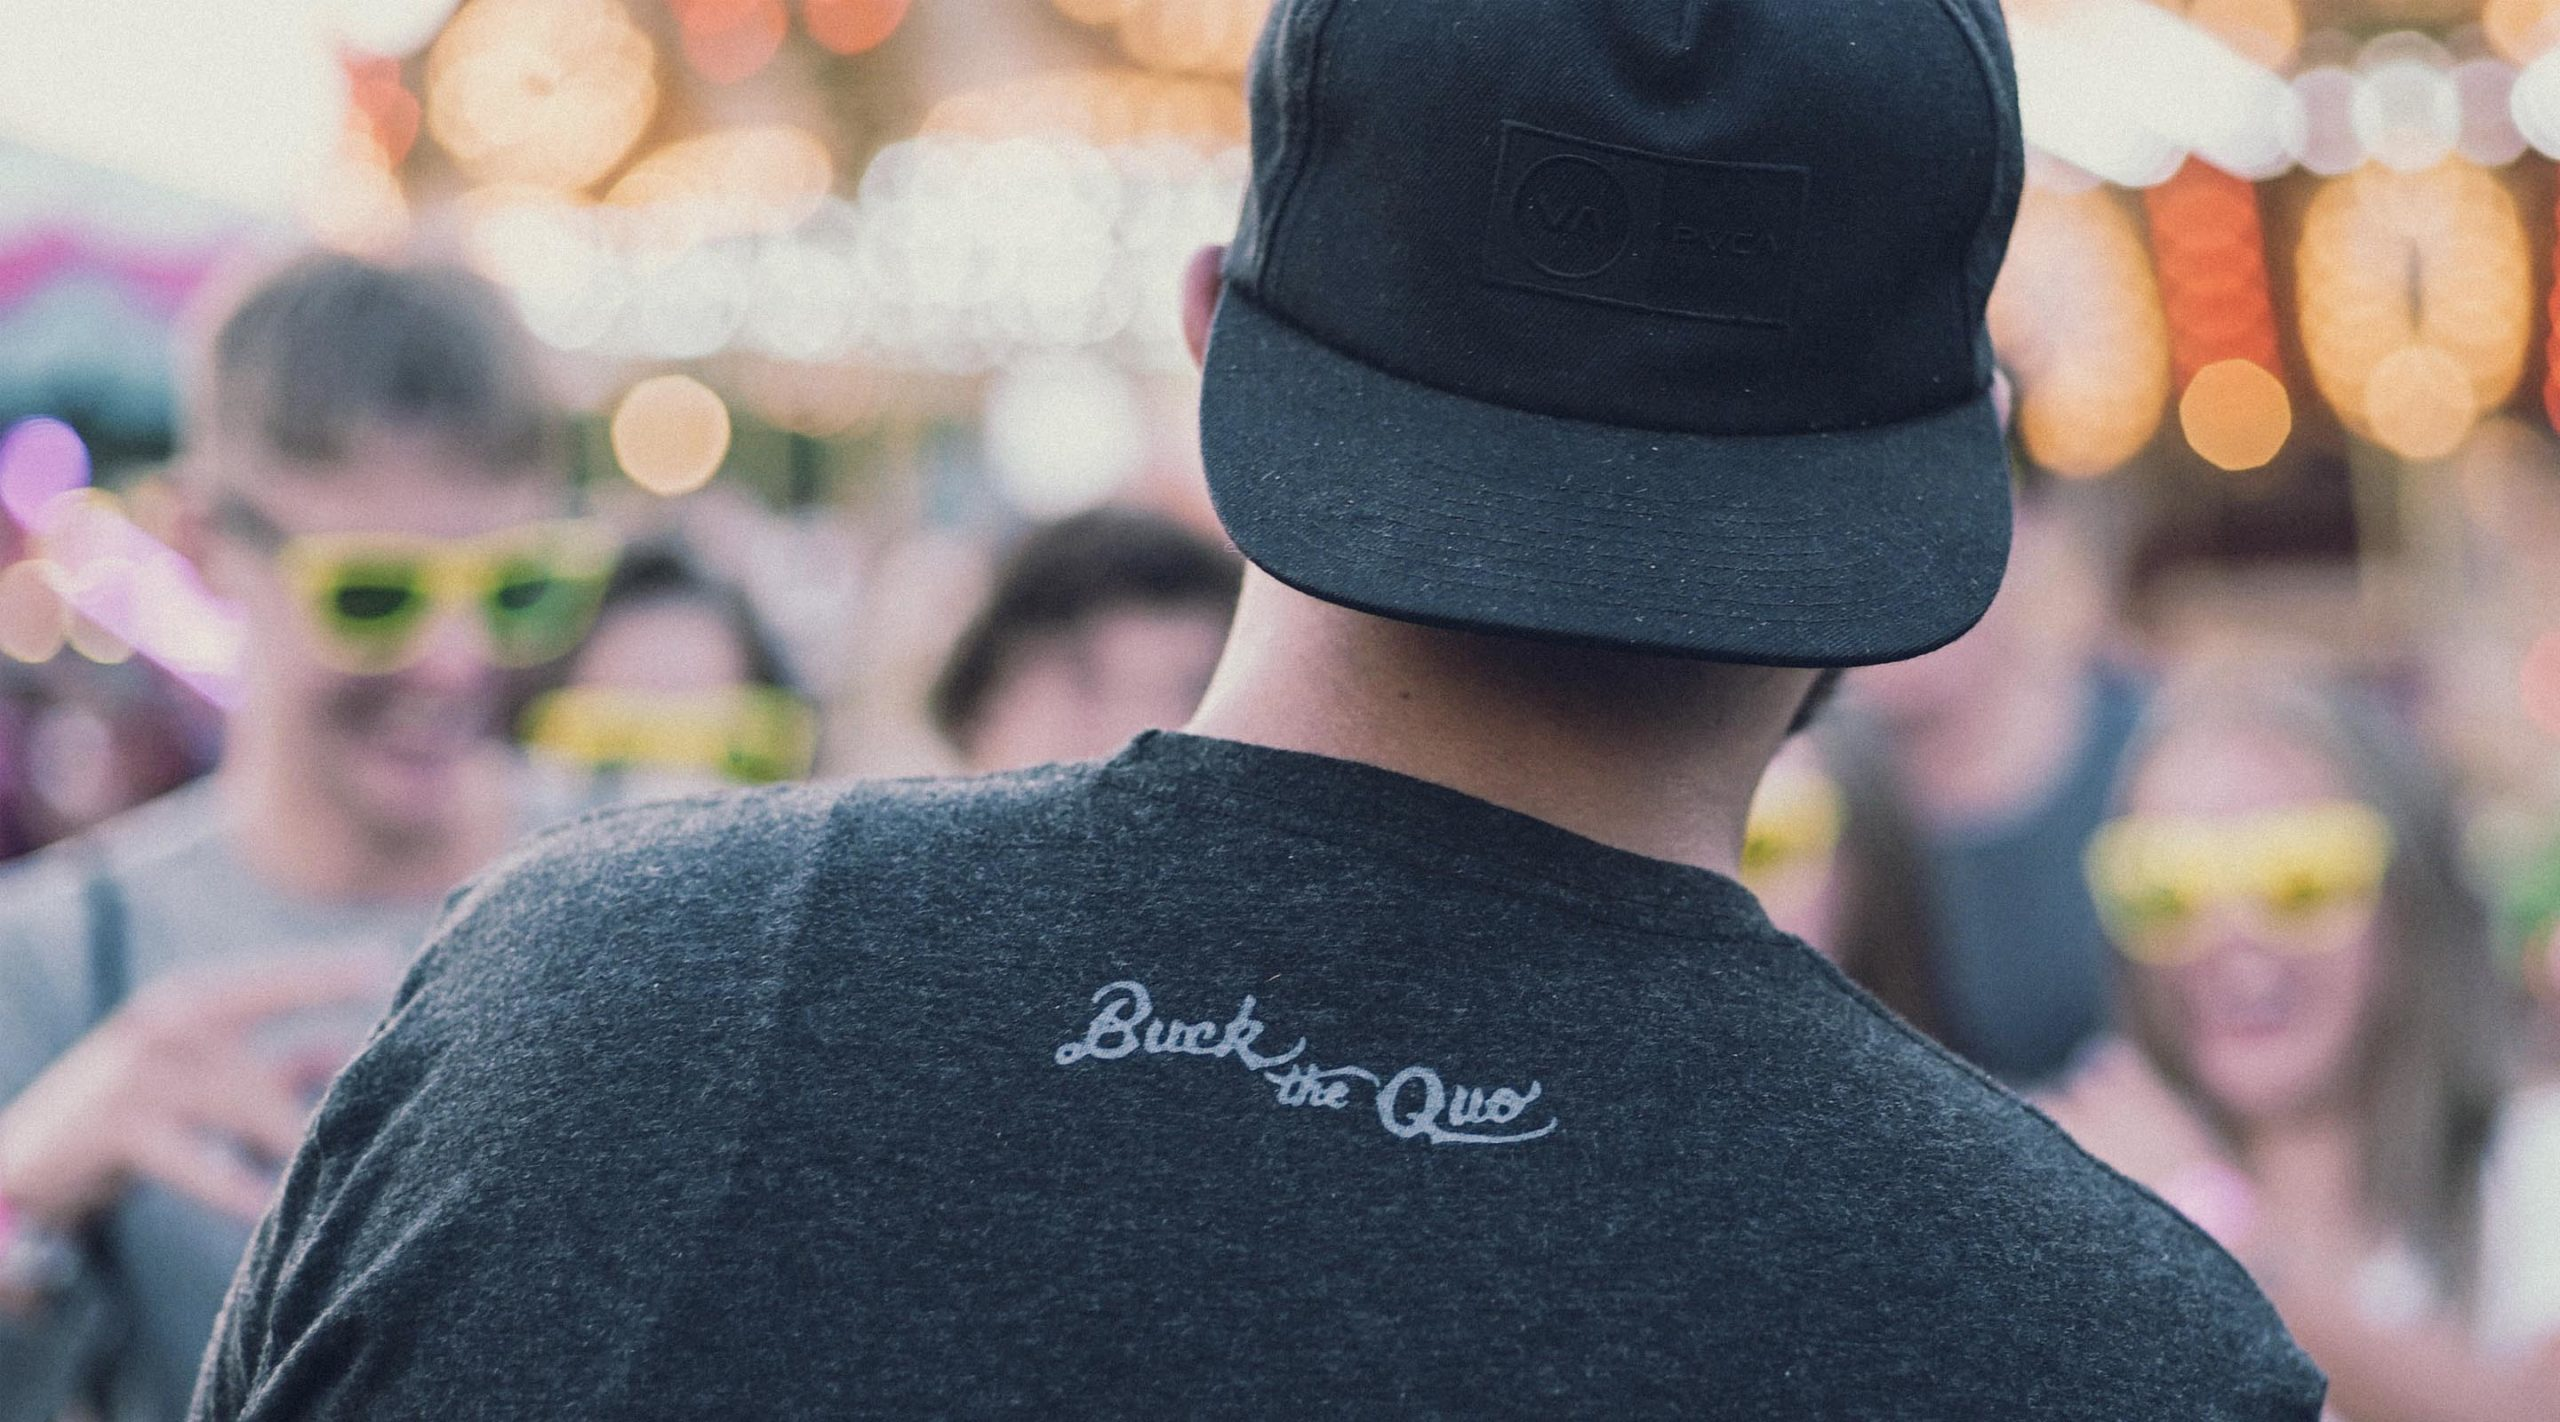 Man with backwards cap and black tee with small Buck the Quo logo on back